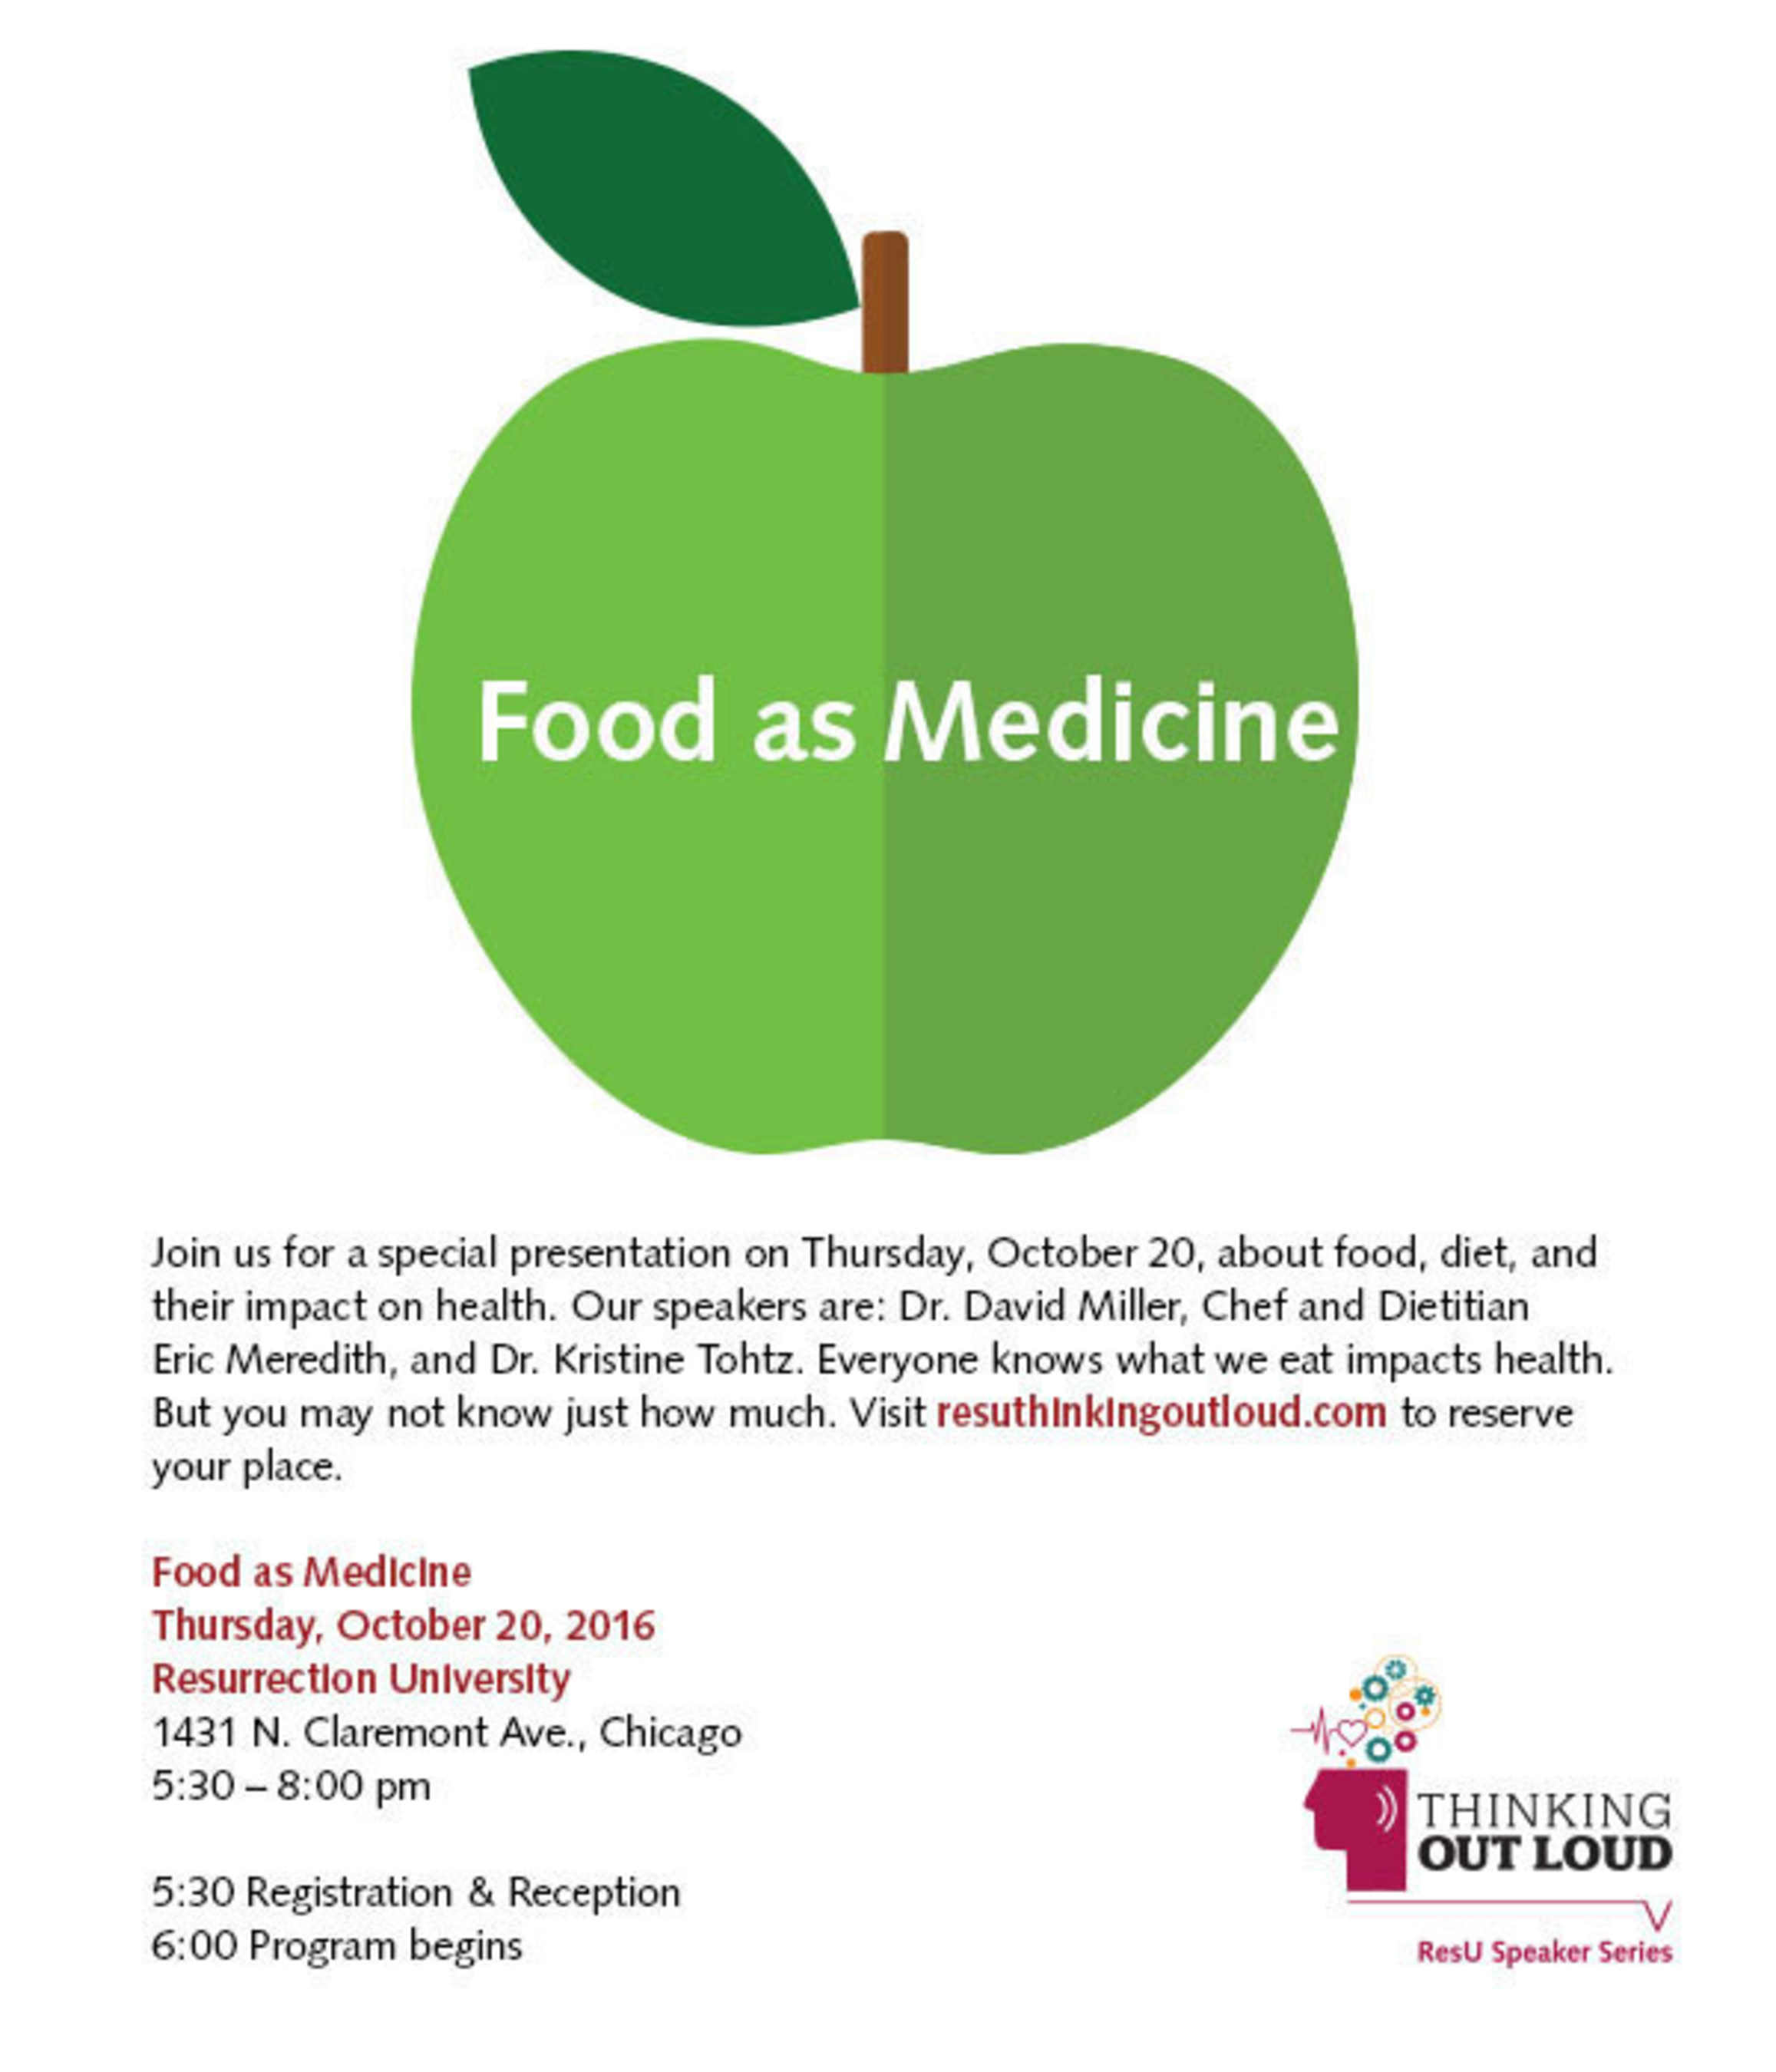 Thinking Out Loud: Food as Medicine on October 20th